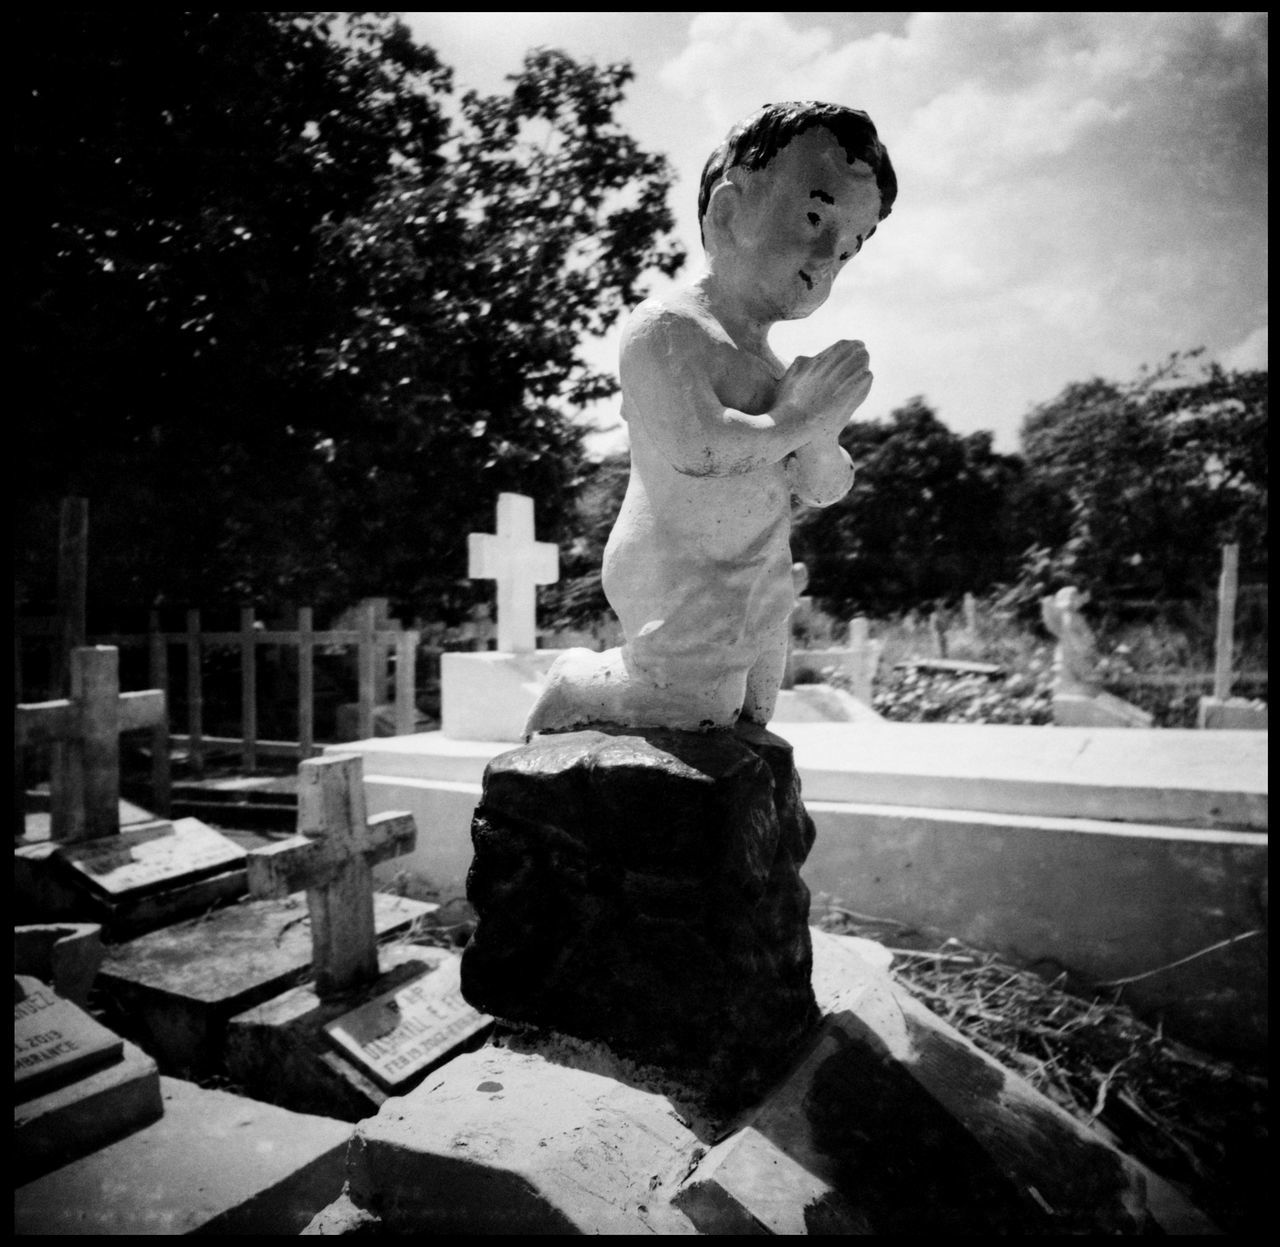 Manilas Southern Graveyard - Intense Grave Sitting Abandoned Places Analogue Photography Angel ASIA Baby Graves Black And White Brothers Cemetery Coffins  Death Film Photography Grain Grave Boxes Grave Sitting Grave Stones Graveyard Madonna Manila Partner Philippines Sitting On Grave Stare The Photojournalist - 2017 EyeEm Awards Travel